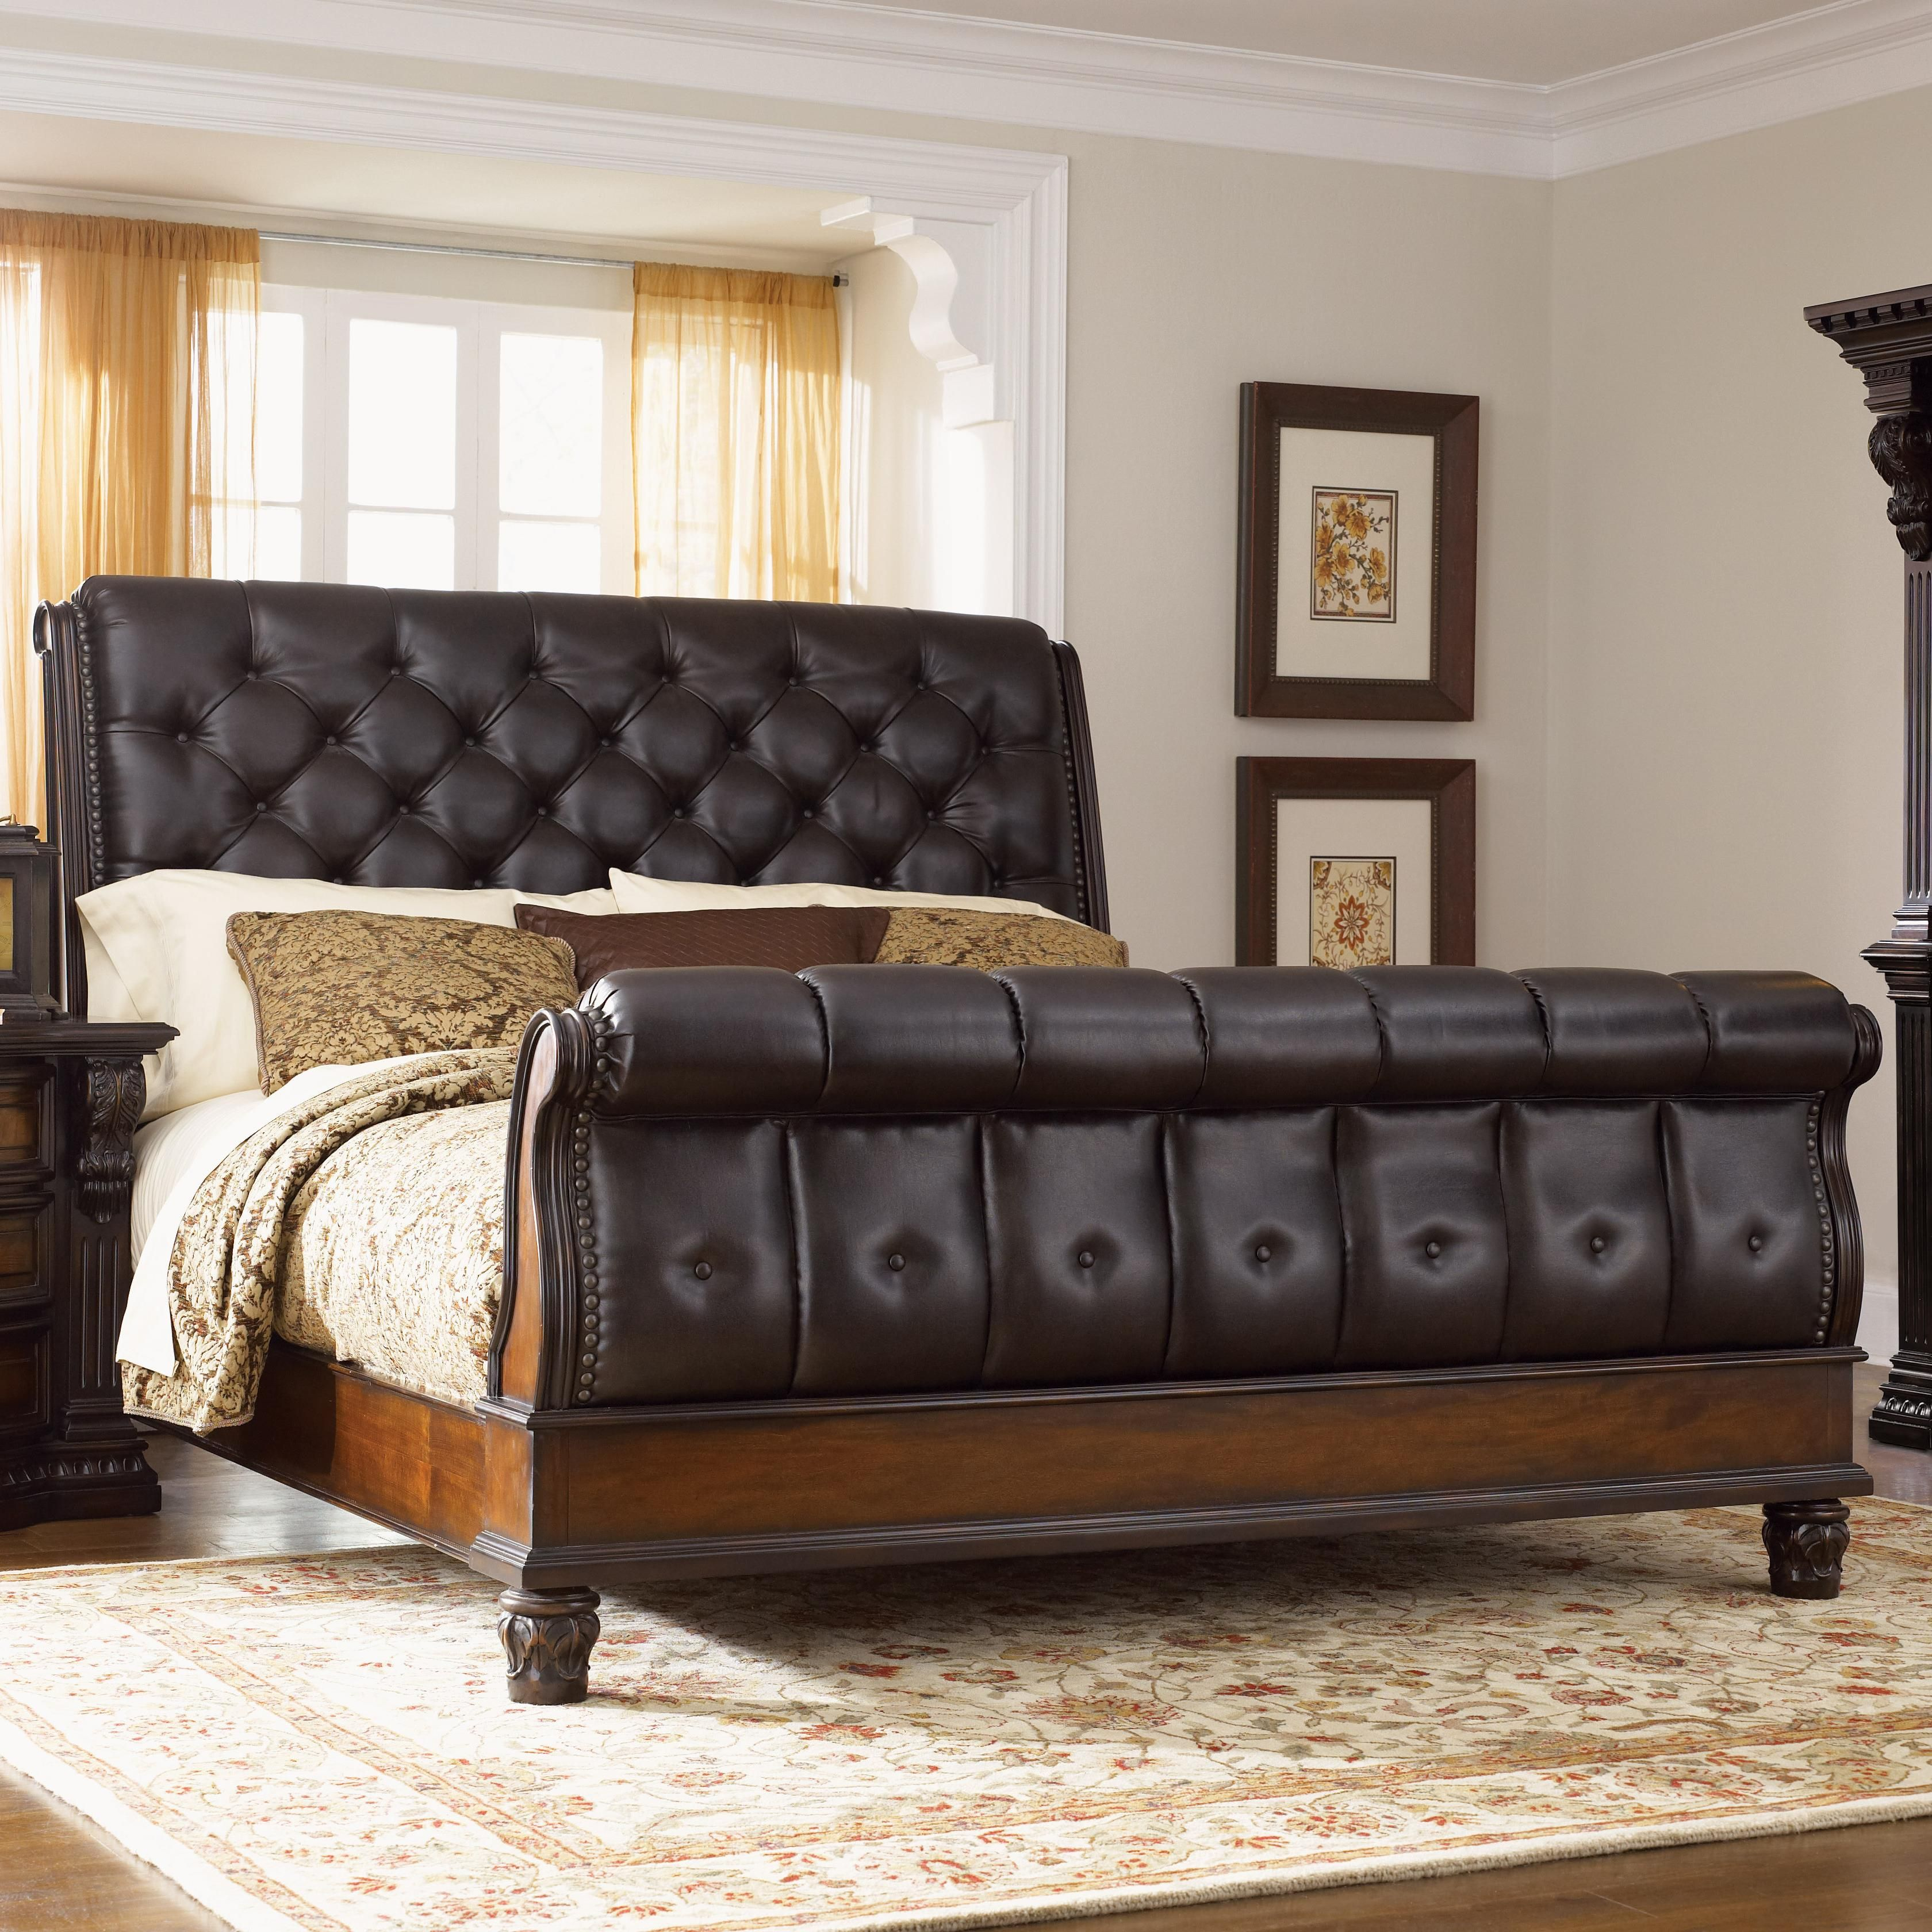 Grand Estates Queen Sleigh Bed W Leather Upholstery By Fairmont